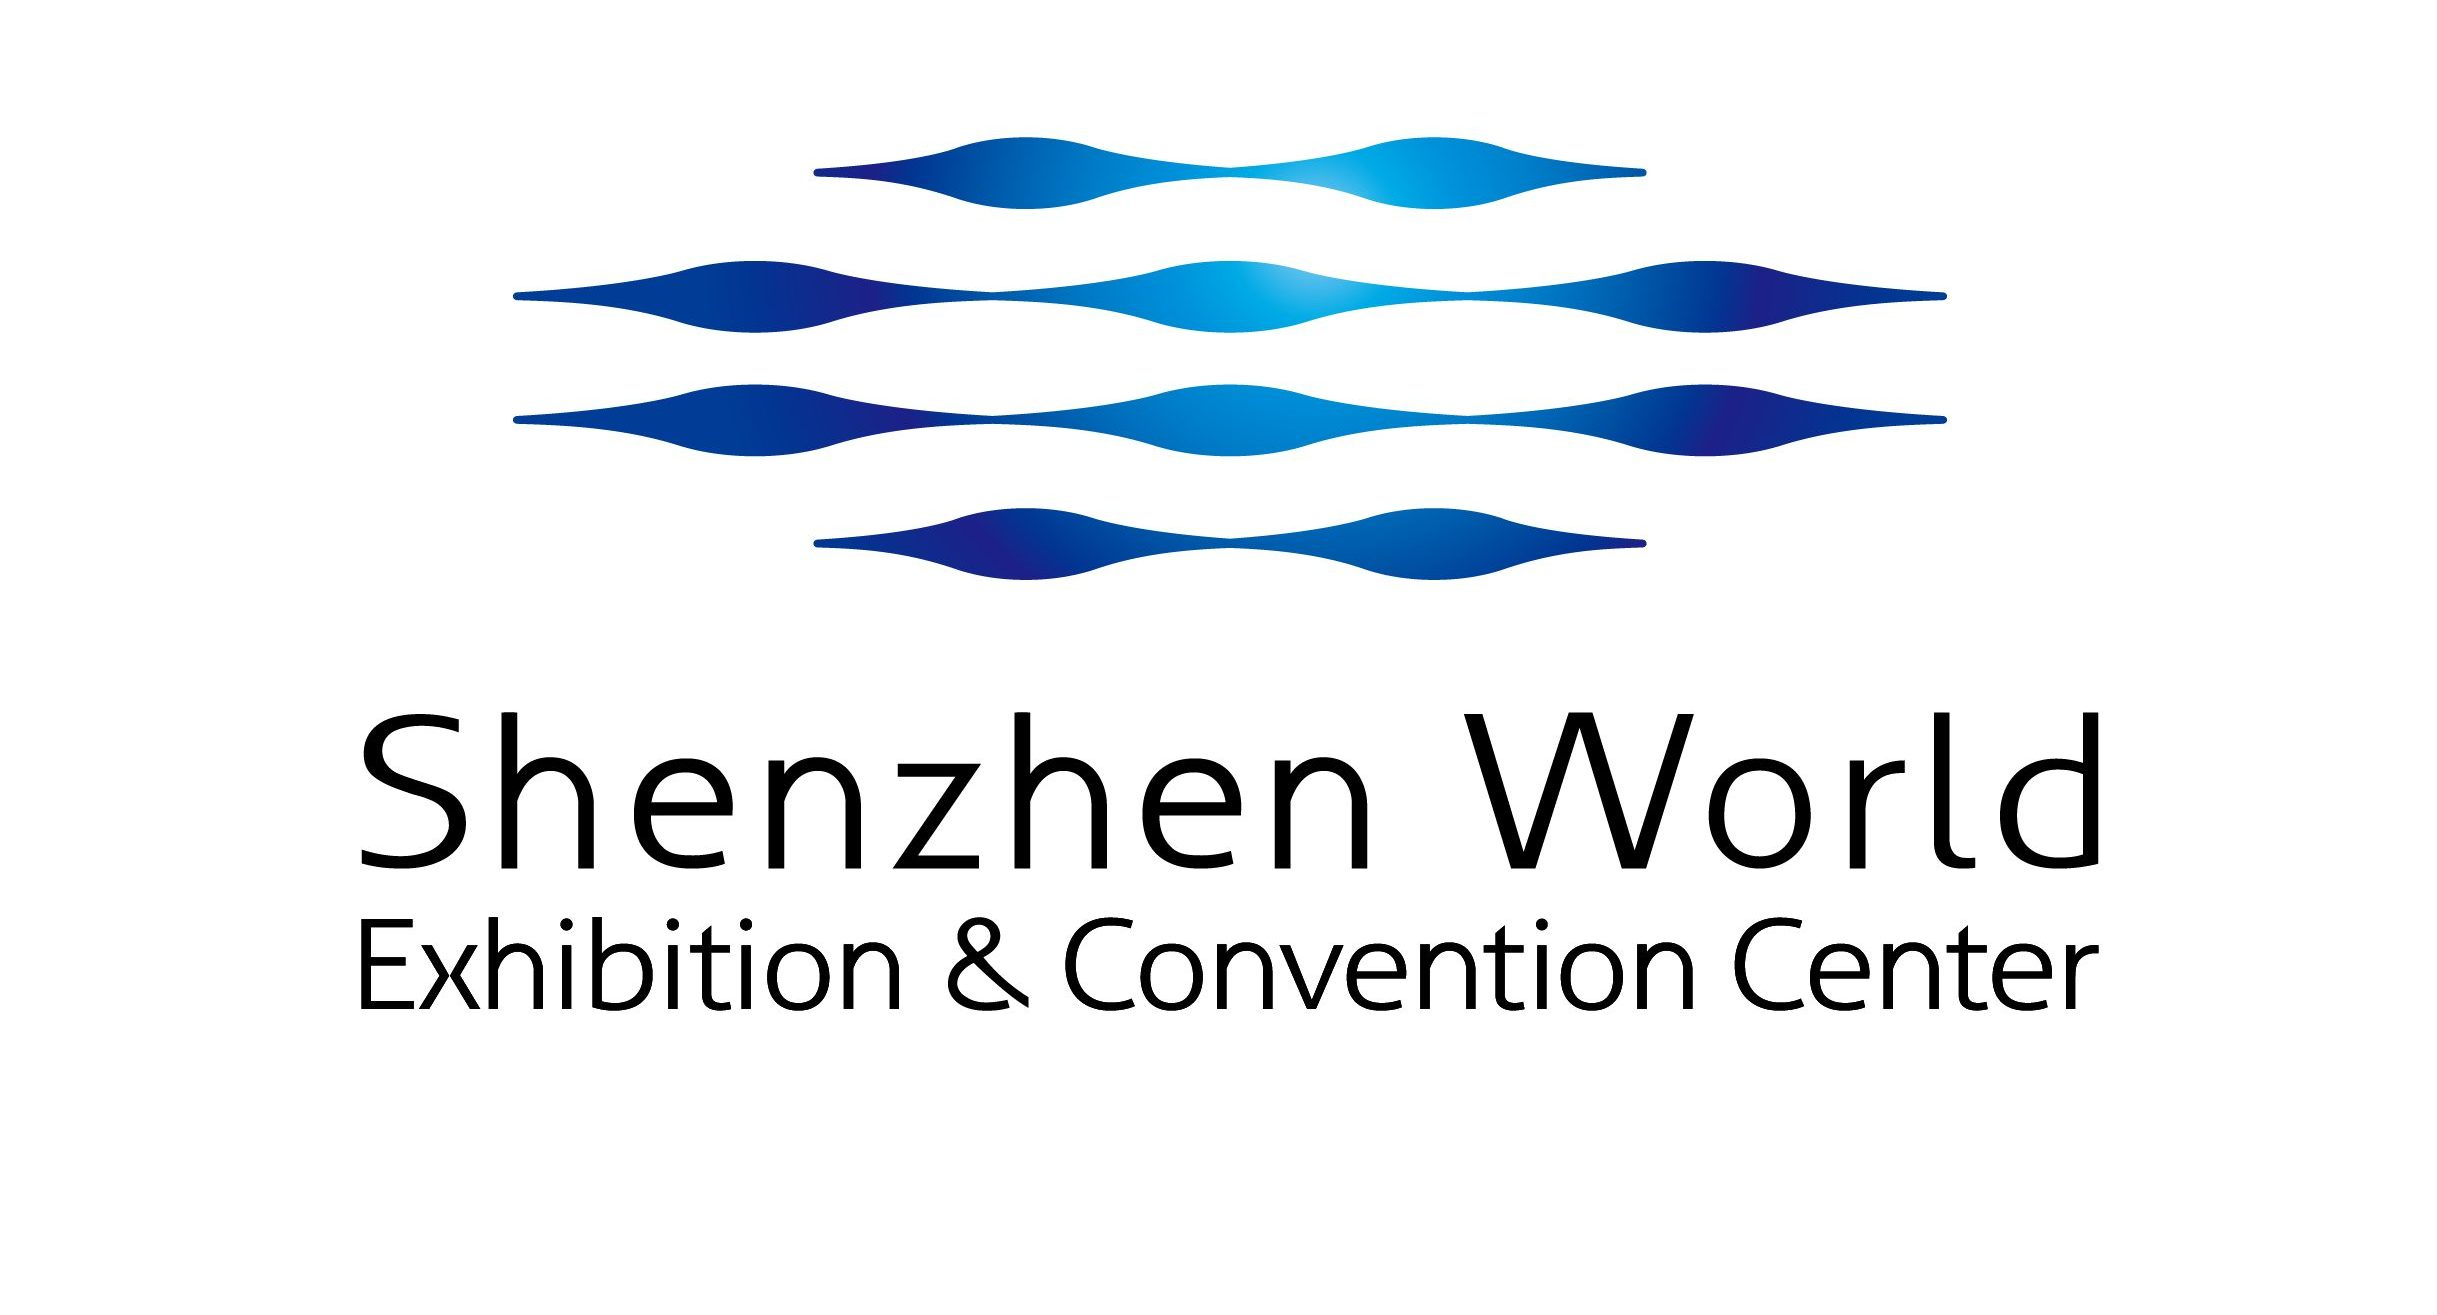 Shenzhen World Exhibition and Conference Center